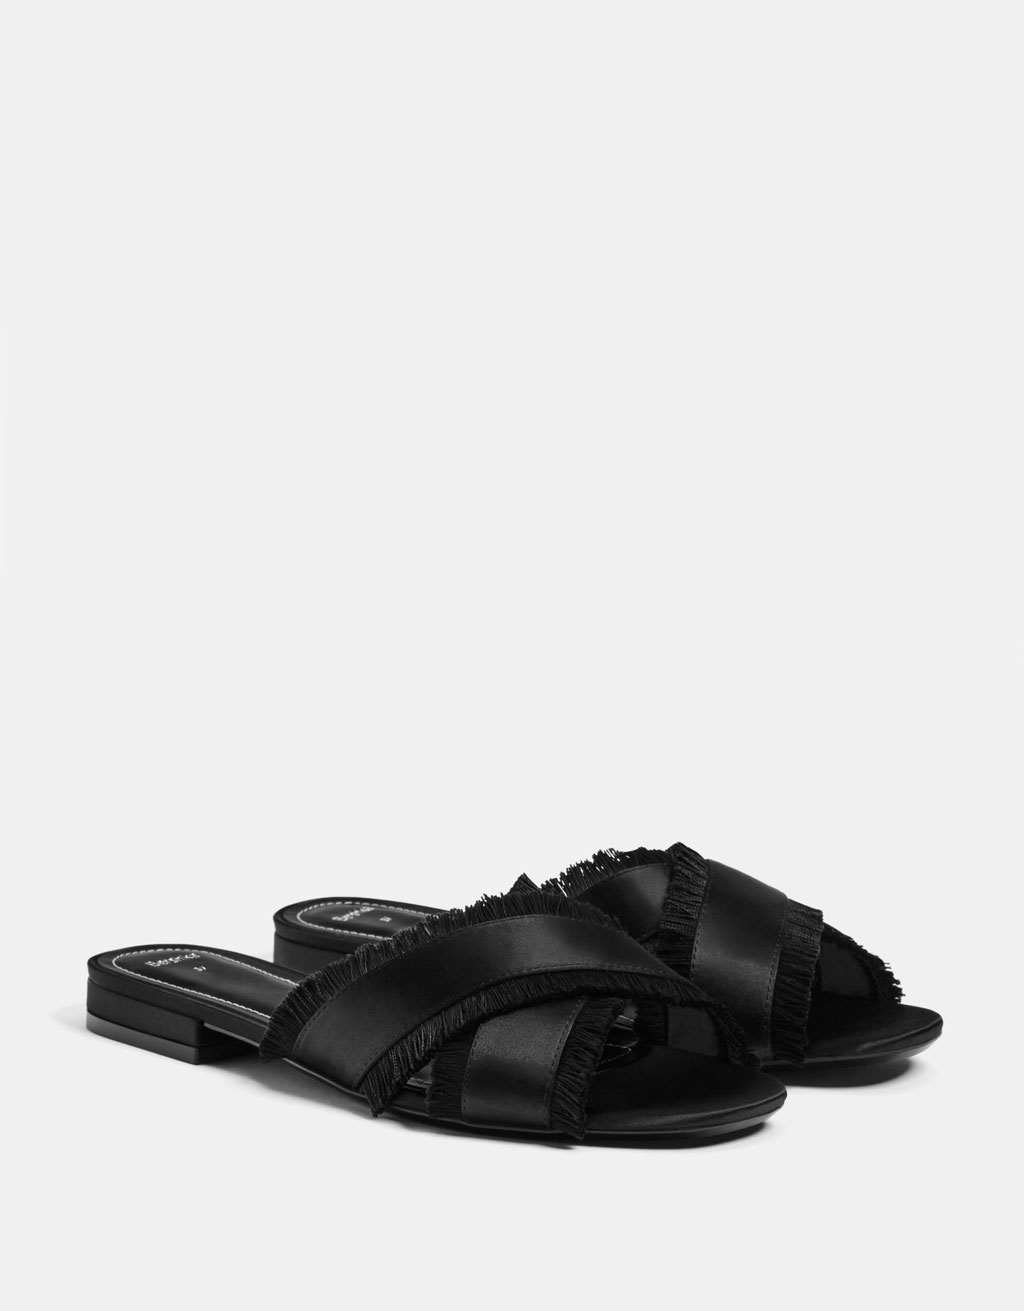 Slides with fringed crossover straps